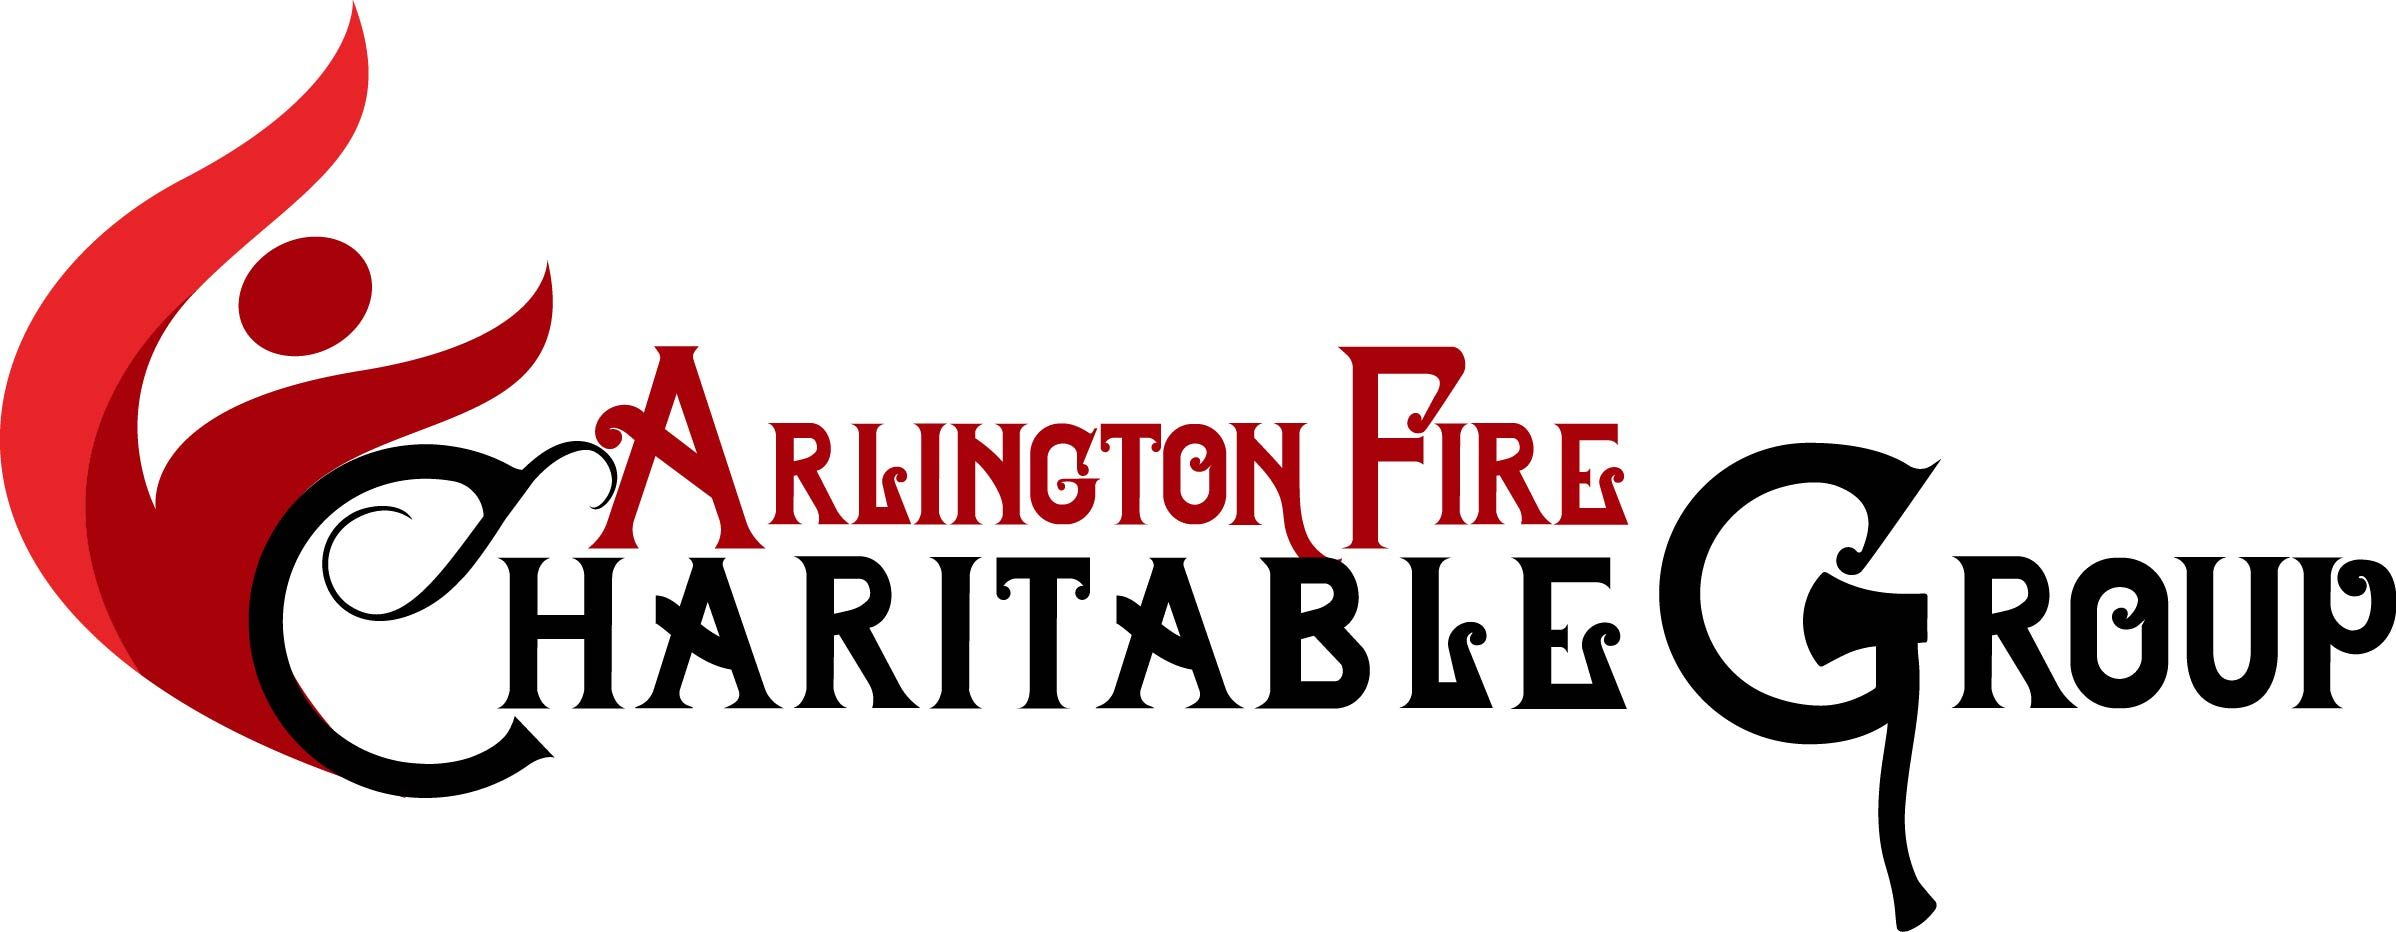 Arlington Fire Charitable Group